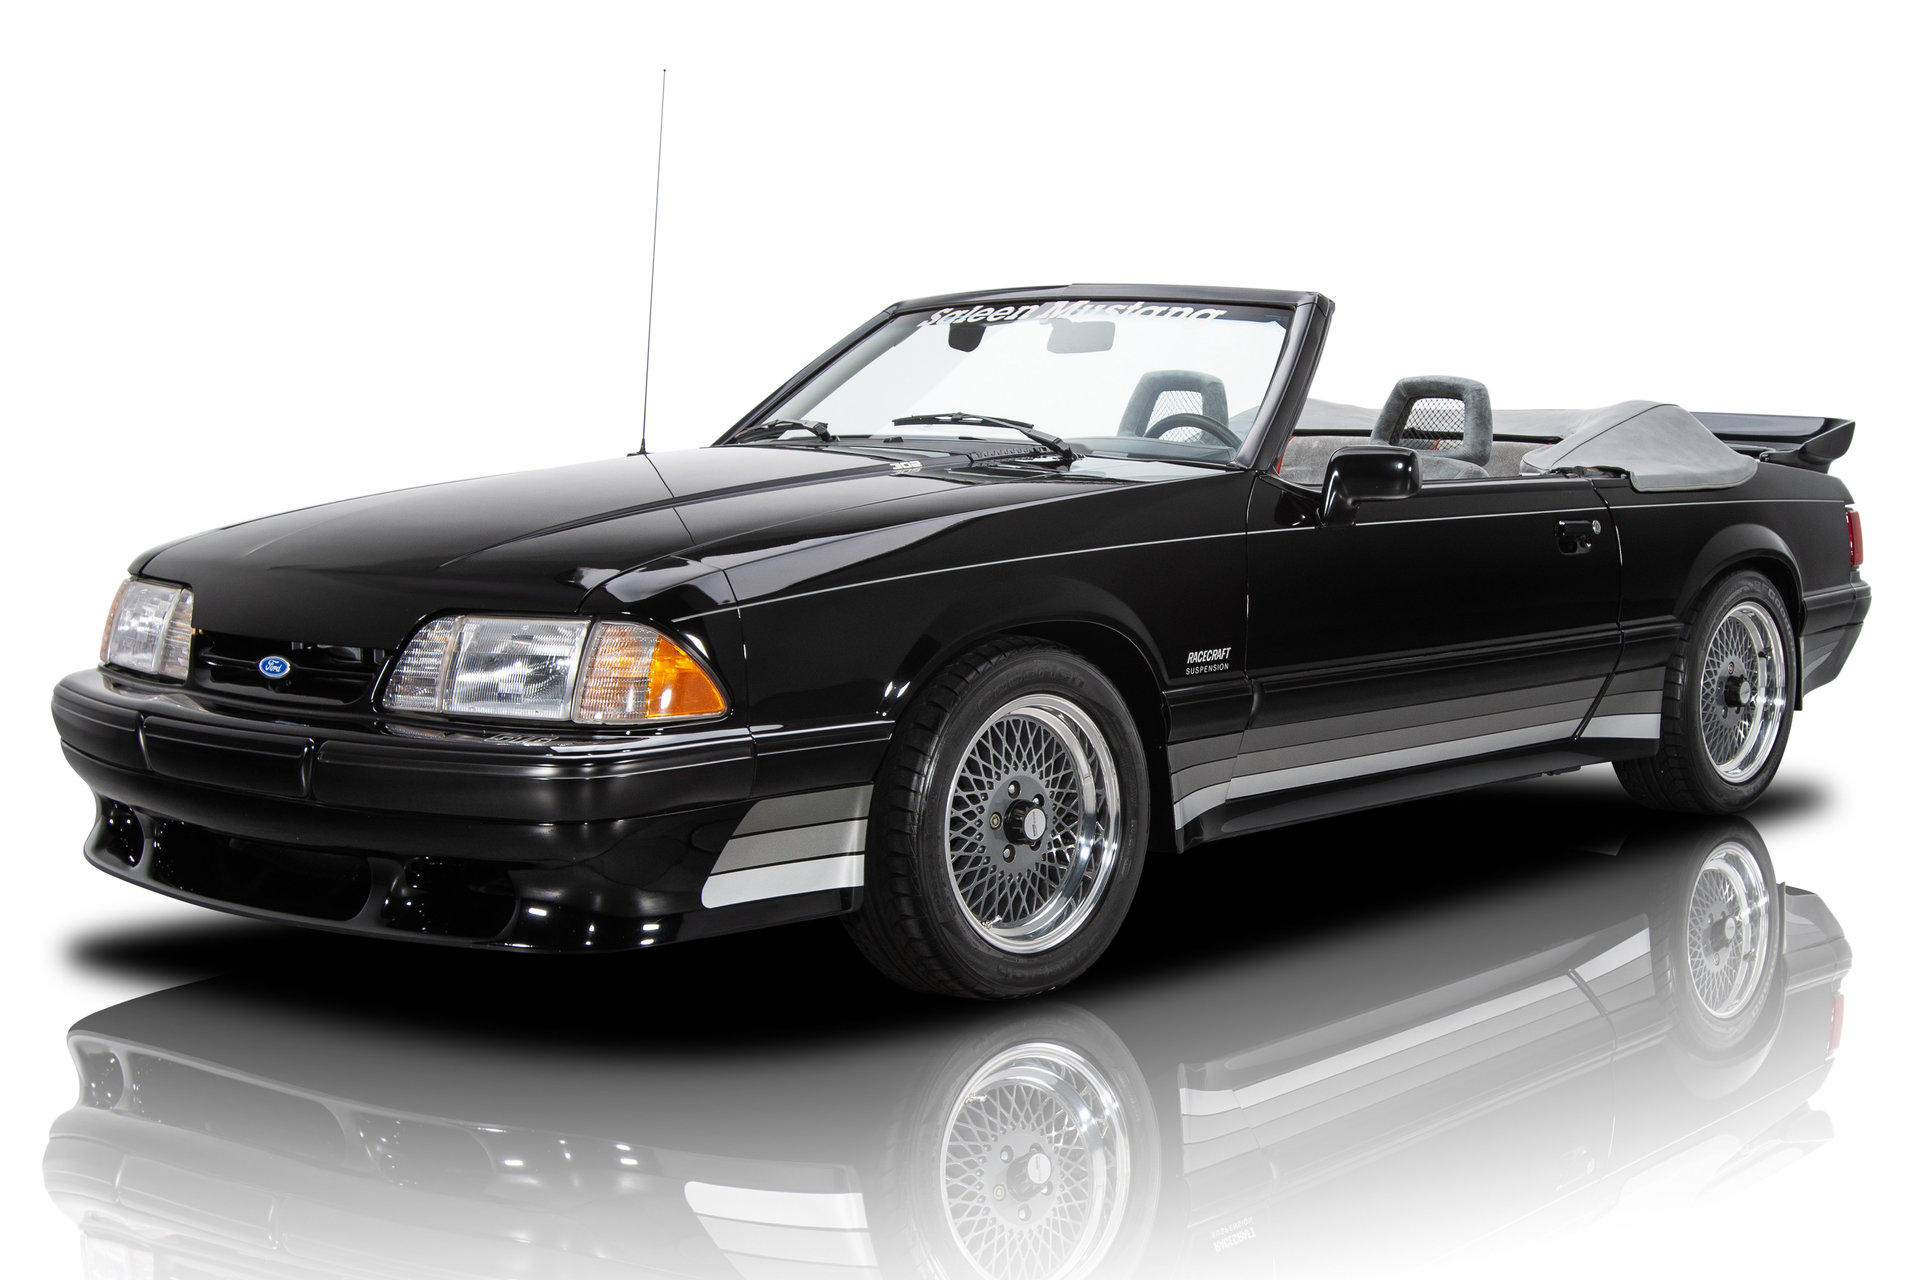 1 of 137 Saleen Mustang Convertible 5.0L V8 5 Speed Manual A/C 14,216 Miles